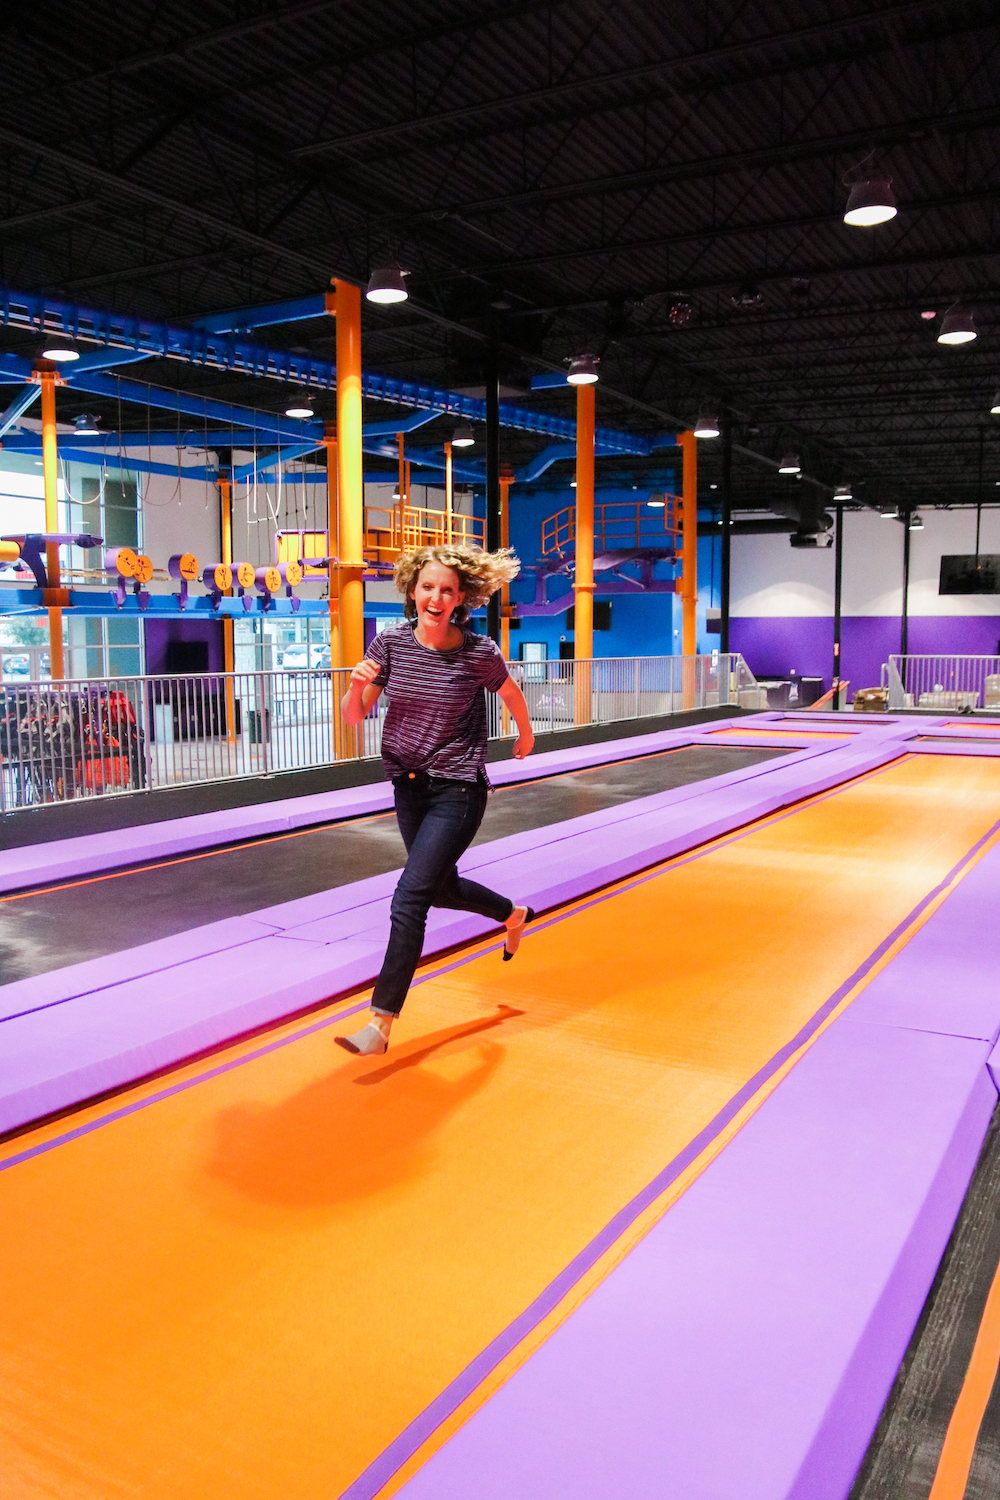 round rock birthday party, round rock kids playscape, indoor play place round rock Texas, altitude trampoline park round rock, round rock park, round rock kids gym, round rock kids birthday party, round rock Texas, Austin Texas, Austin mom blogger, Austin family blogger, Jesse Coulter blogger, rainy day activity for kids in Austin